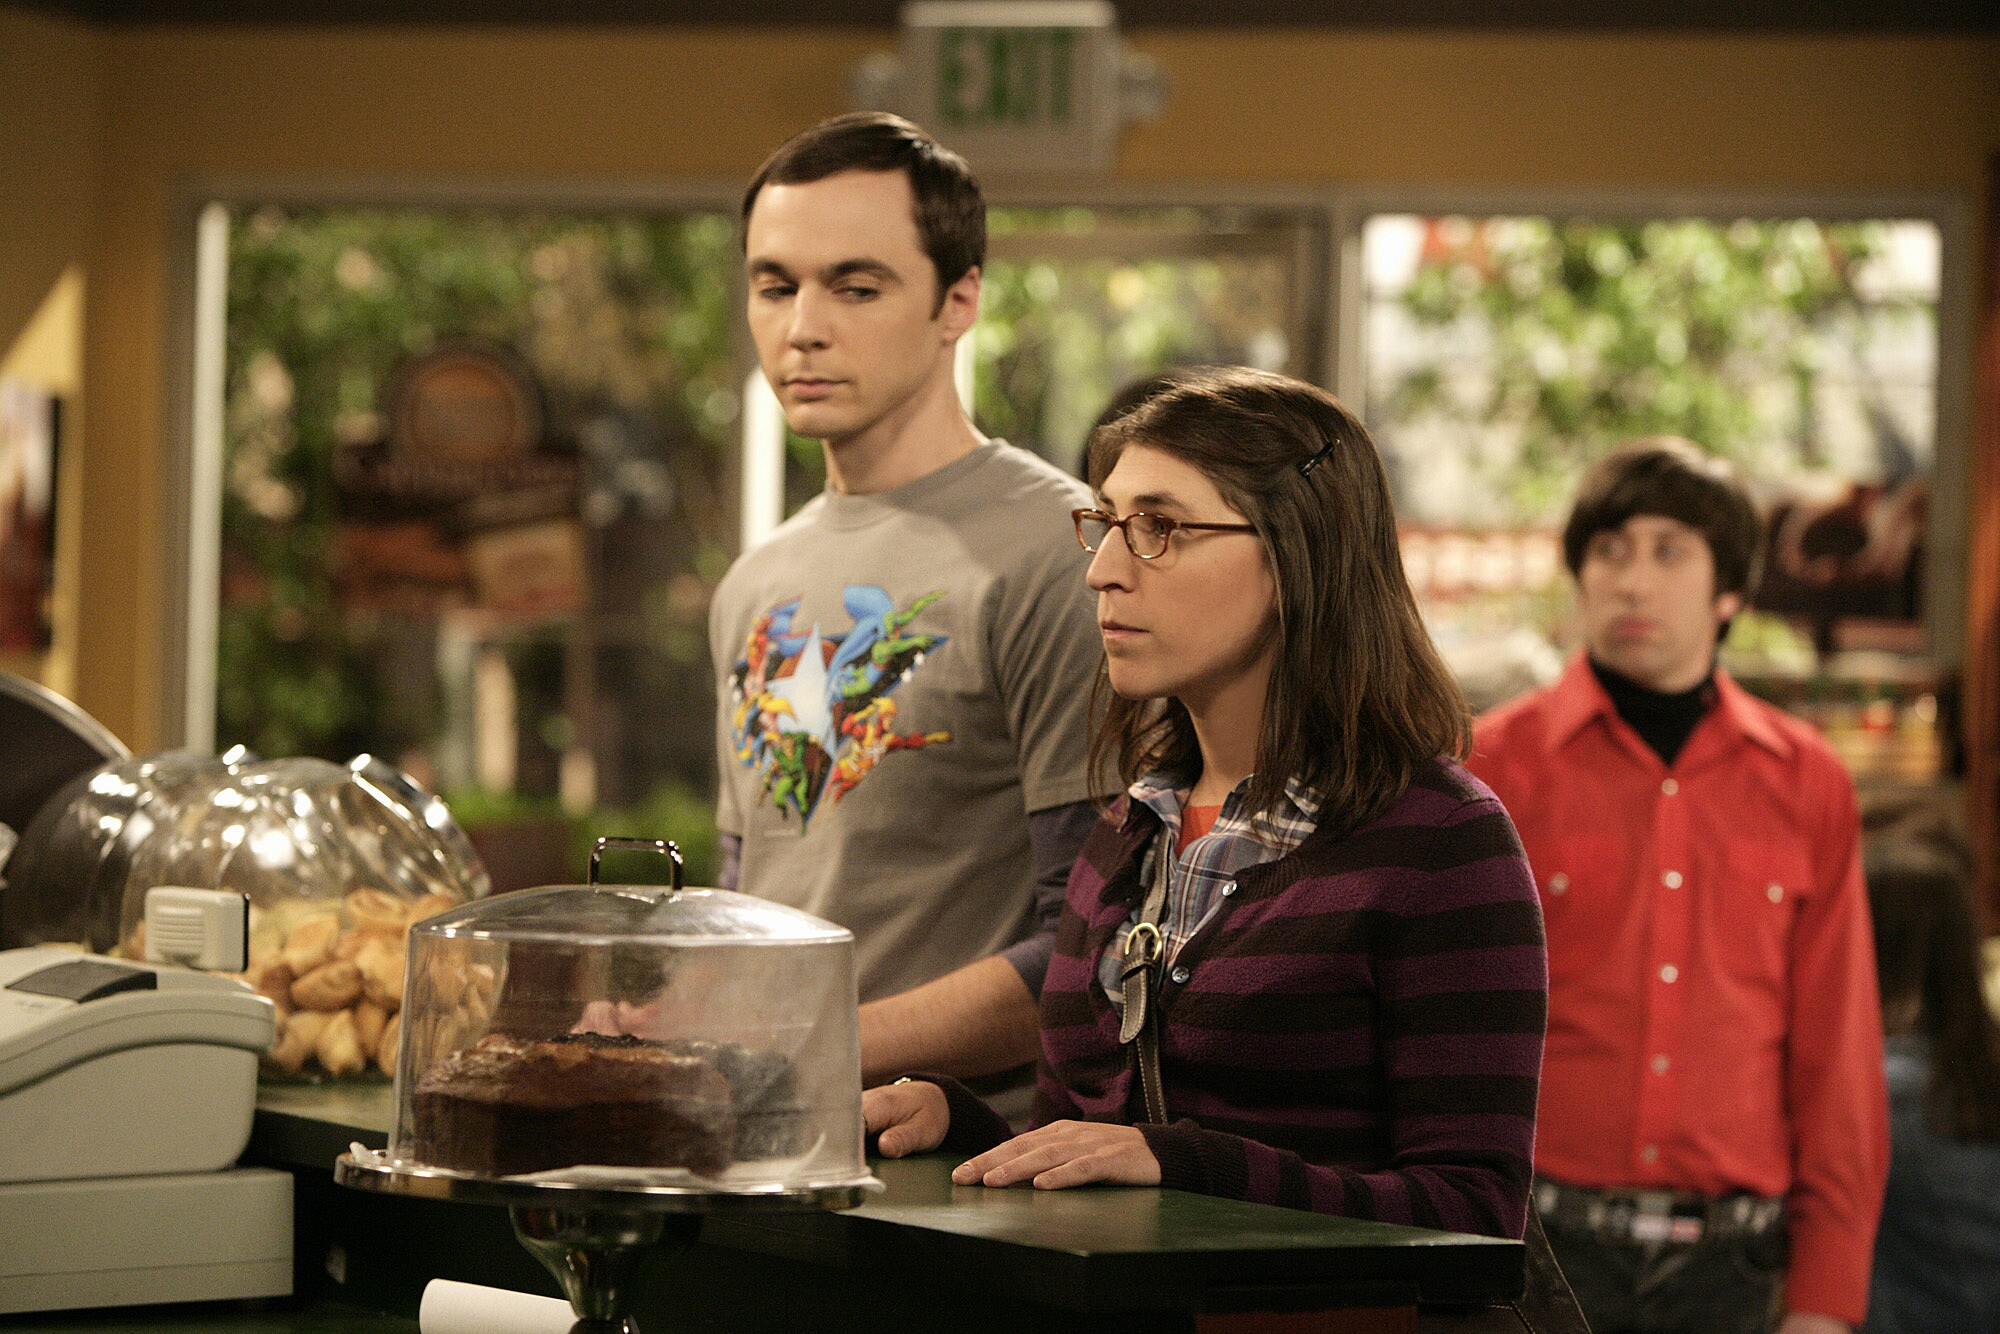 Photos: Photo gallery: A look through the years of the Big BangTheory